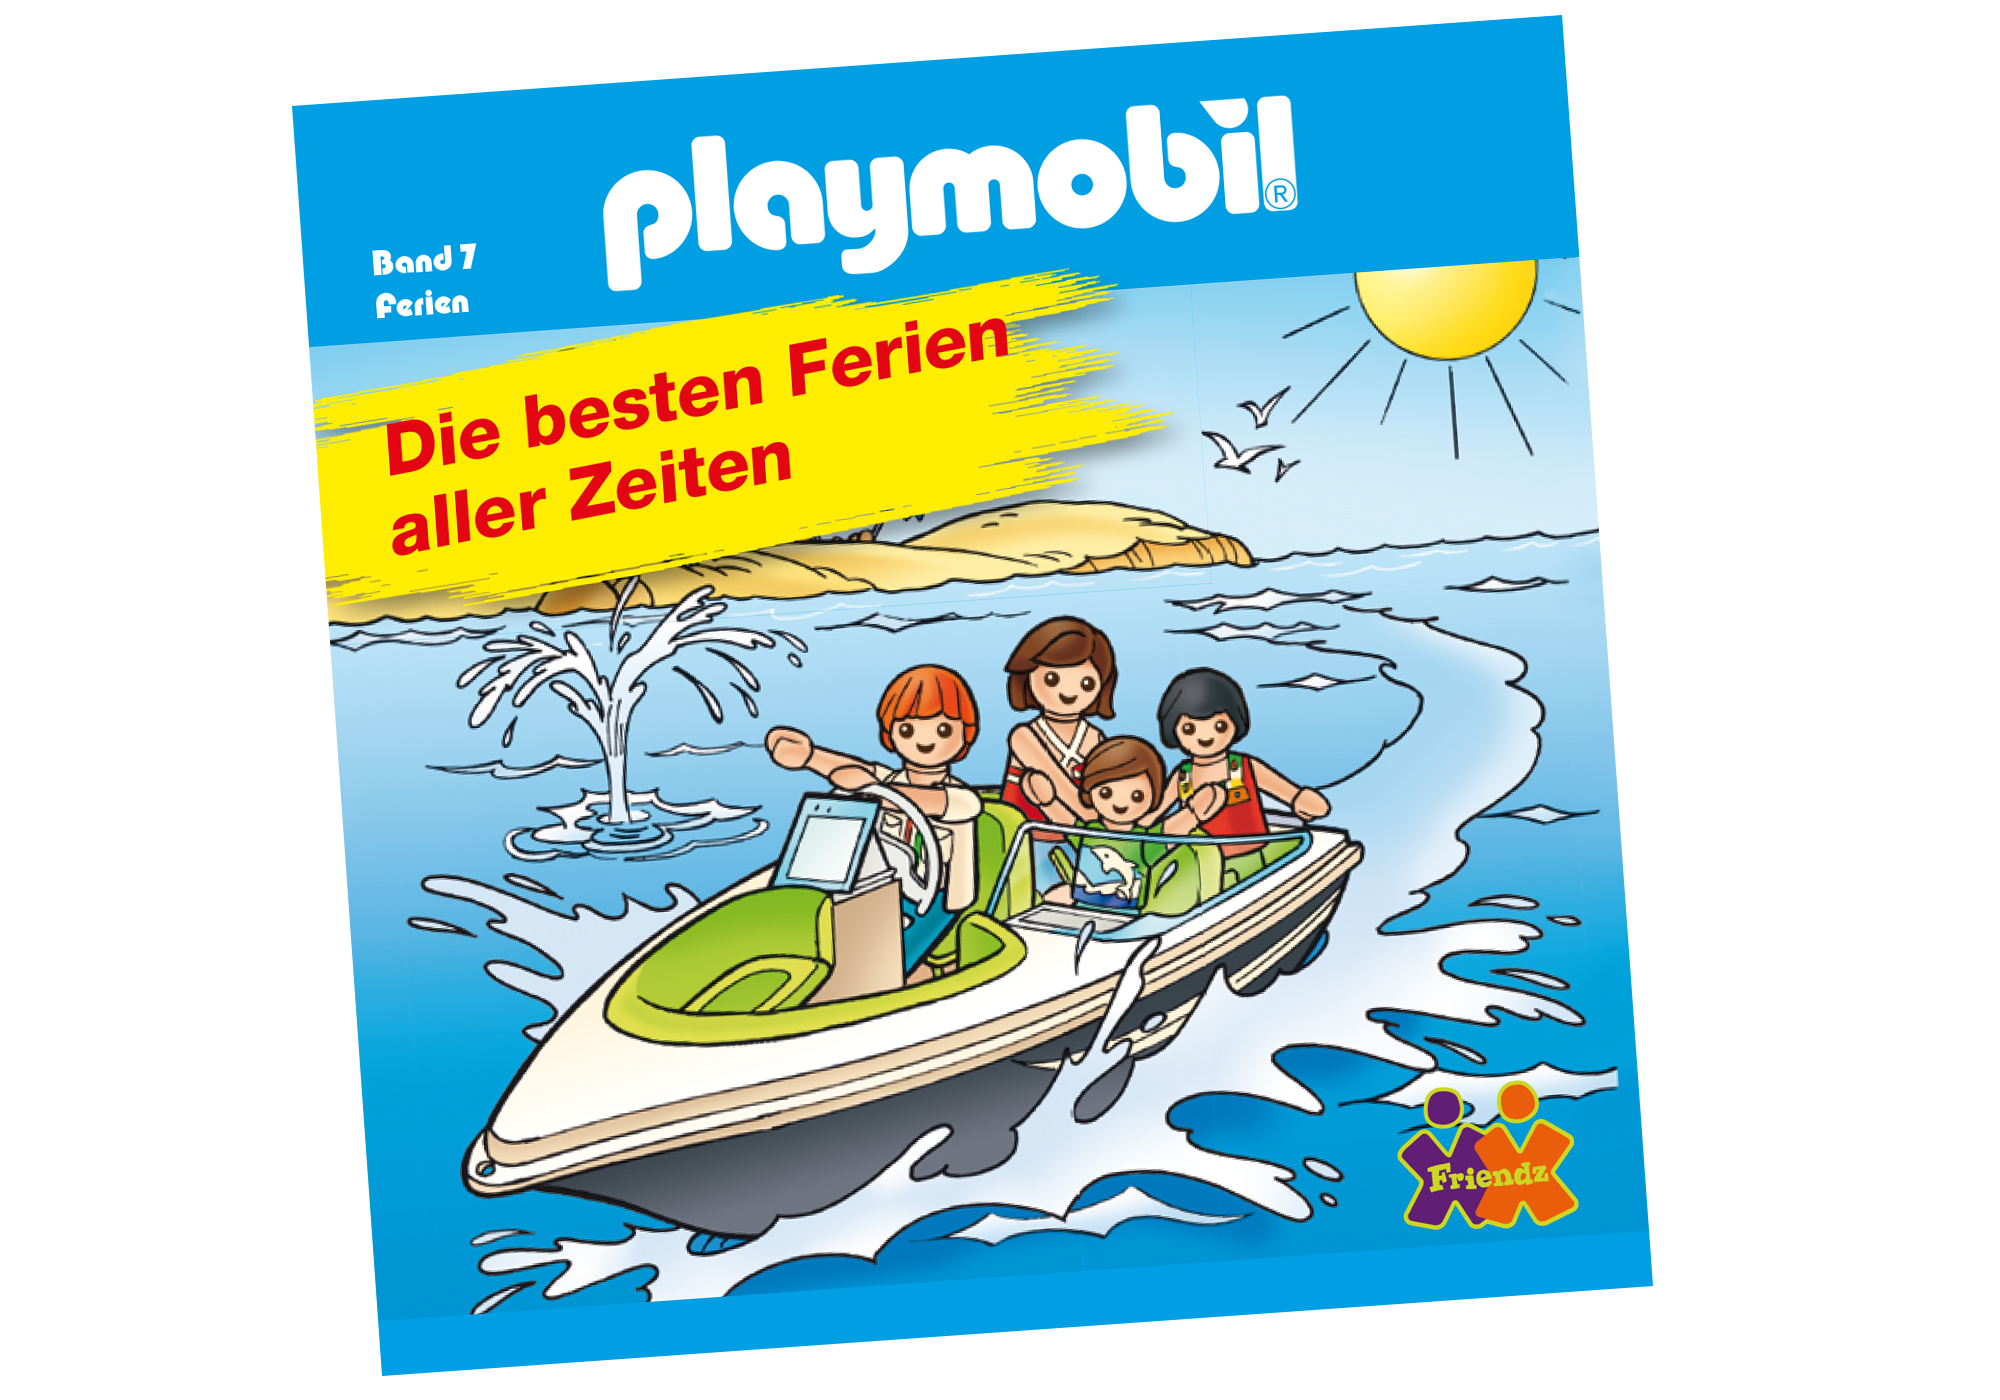 http://media.playmobil.com/i/playmobil/80428_product_detail